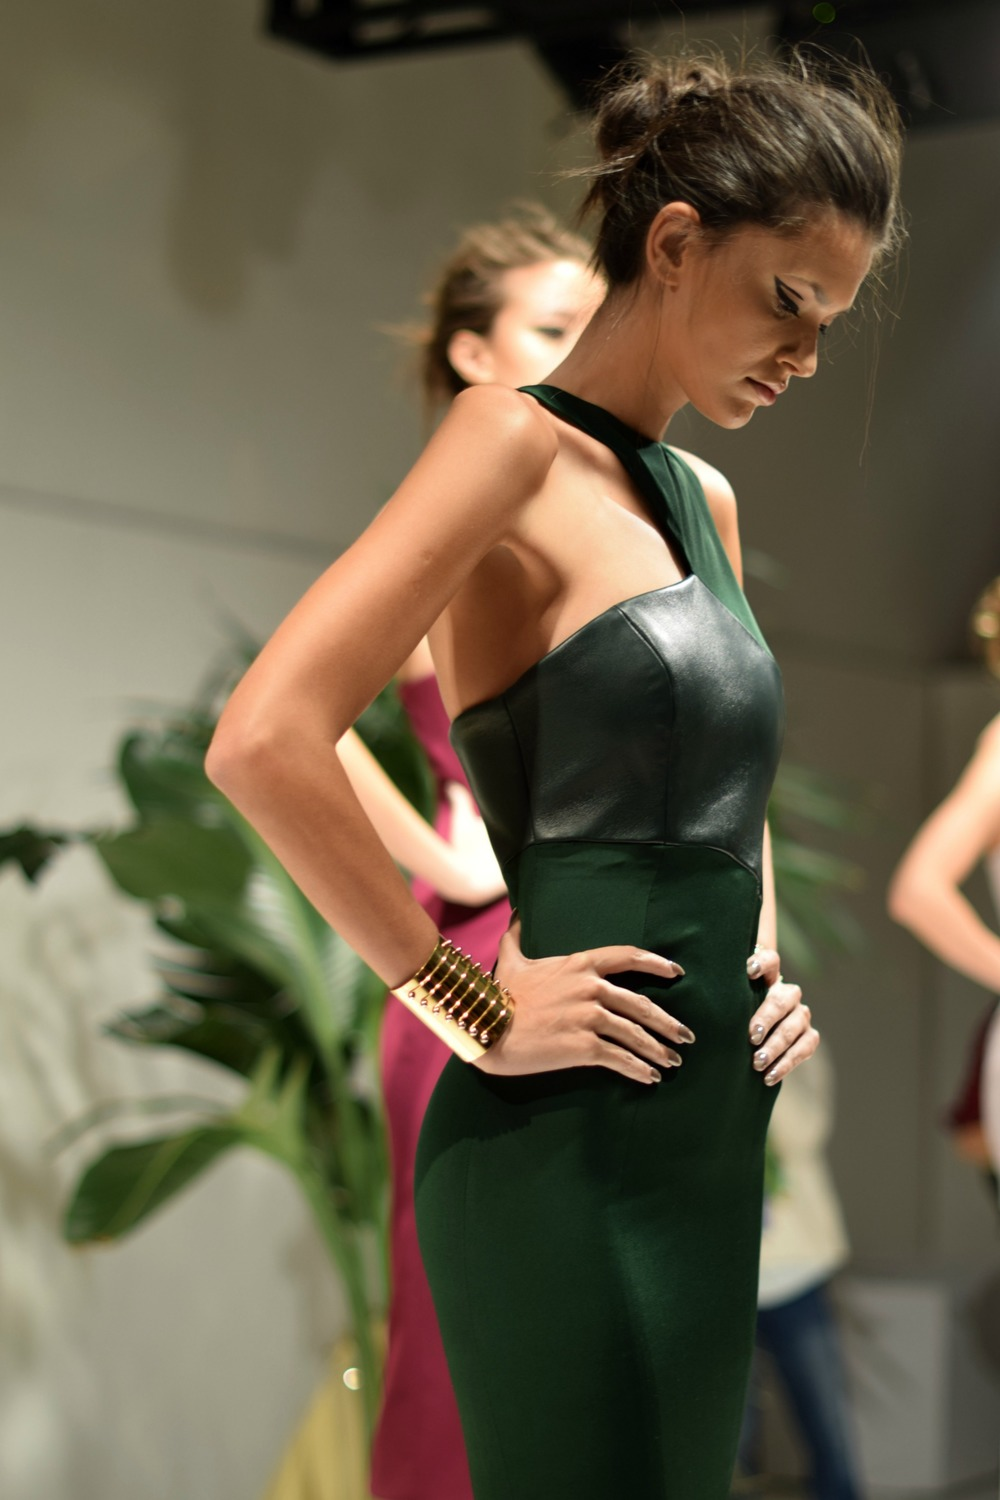 NYFW Jay Godfrey Fashion Presentation Fall:Winter 2016 Louboutins & Love Fashion Blog Esther Santer NYC Street Style Runway Models Collection Press Coverage Photos Details Dress Gown Beautiful Gorgeous Stunning Pretty Shop New York City Celebrities 7.jpg